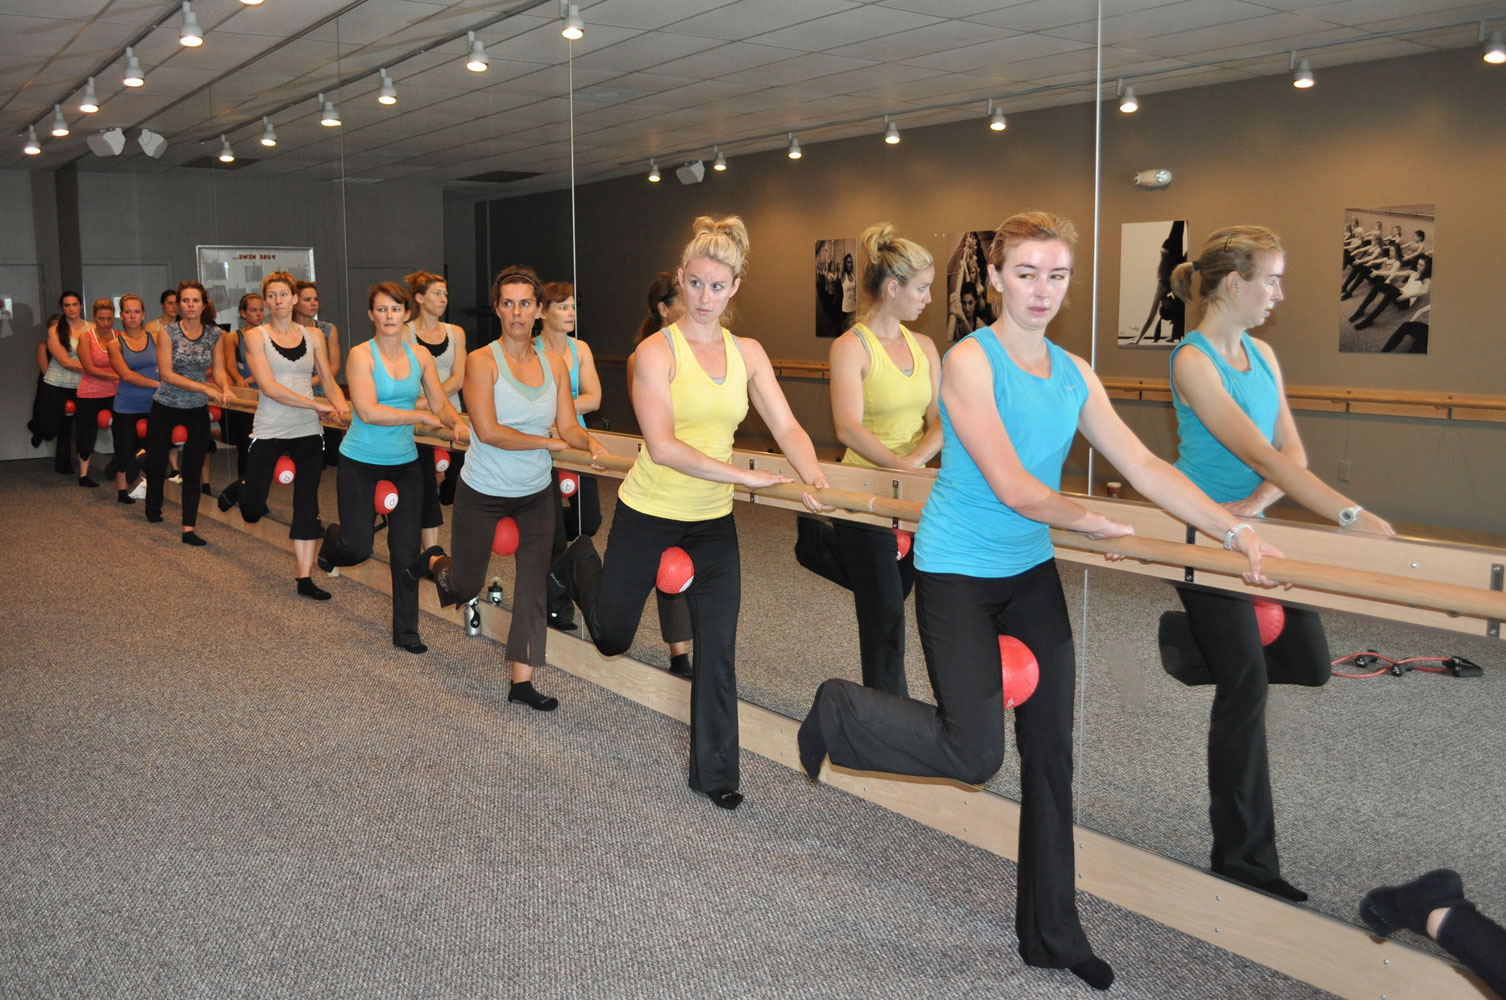 Workout Spotlight: Pure Barre Workout Spotlight: Pure Barre new images